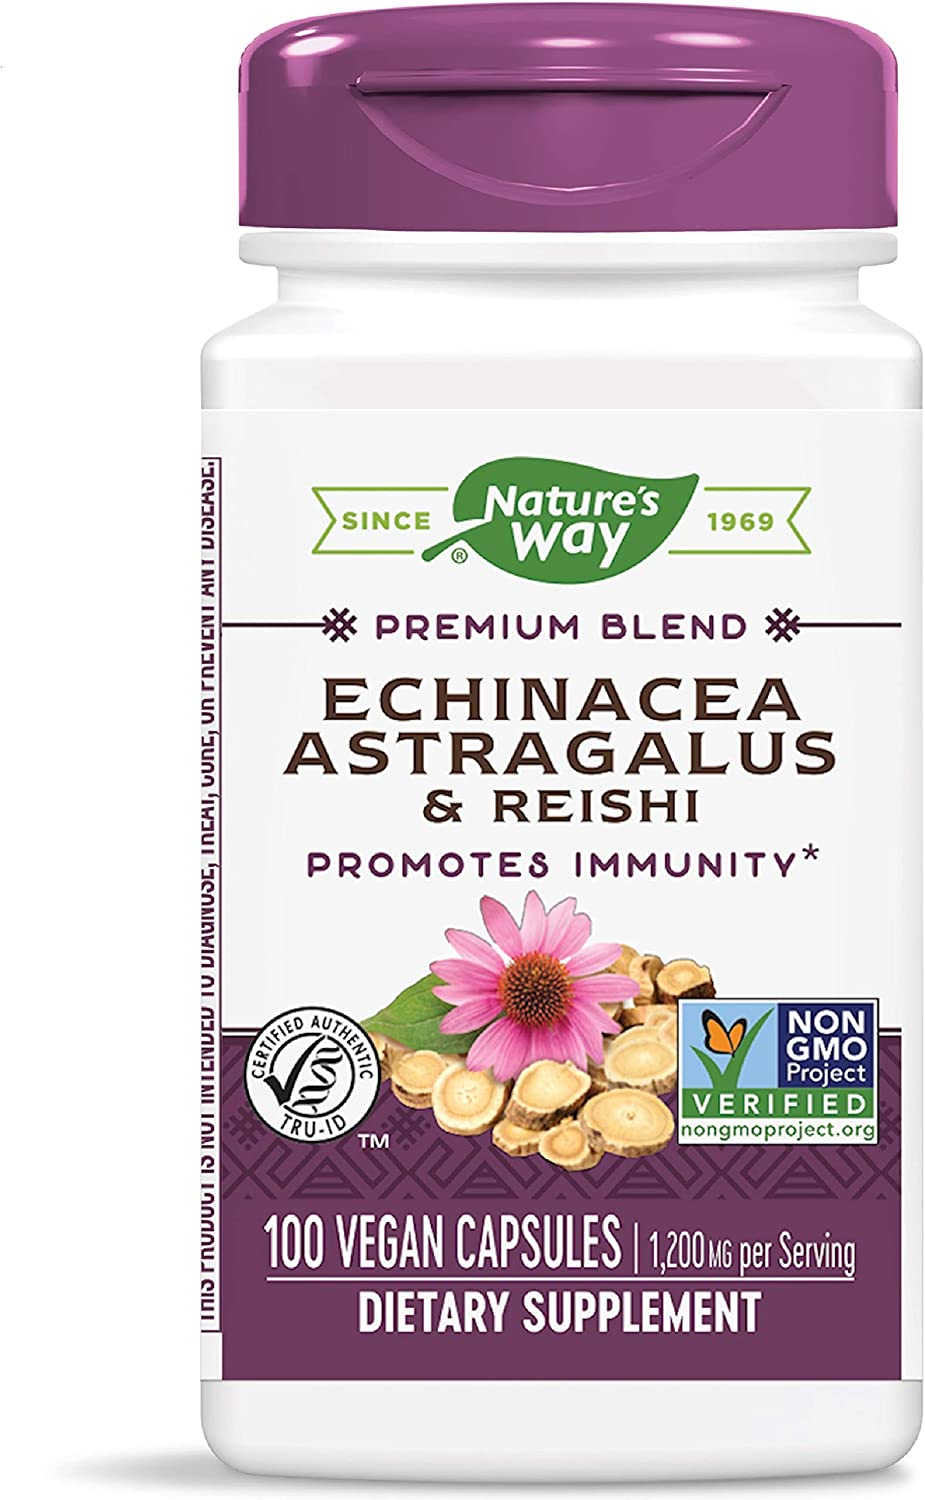 Nature's Way Echinacea Astragalus & Reishi, 1,200 mg per serving, 100 Capsules